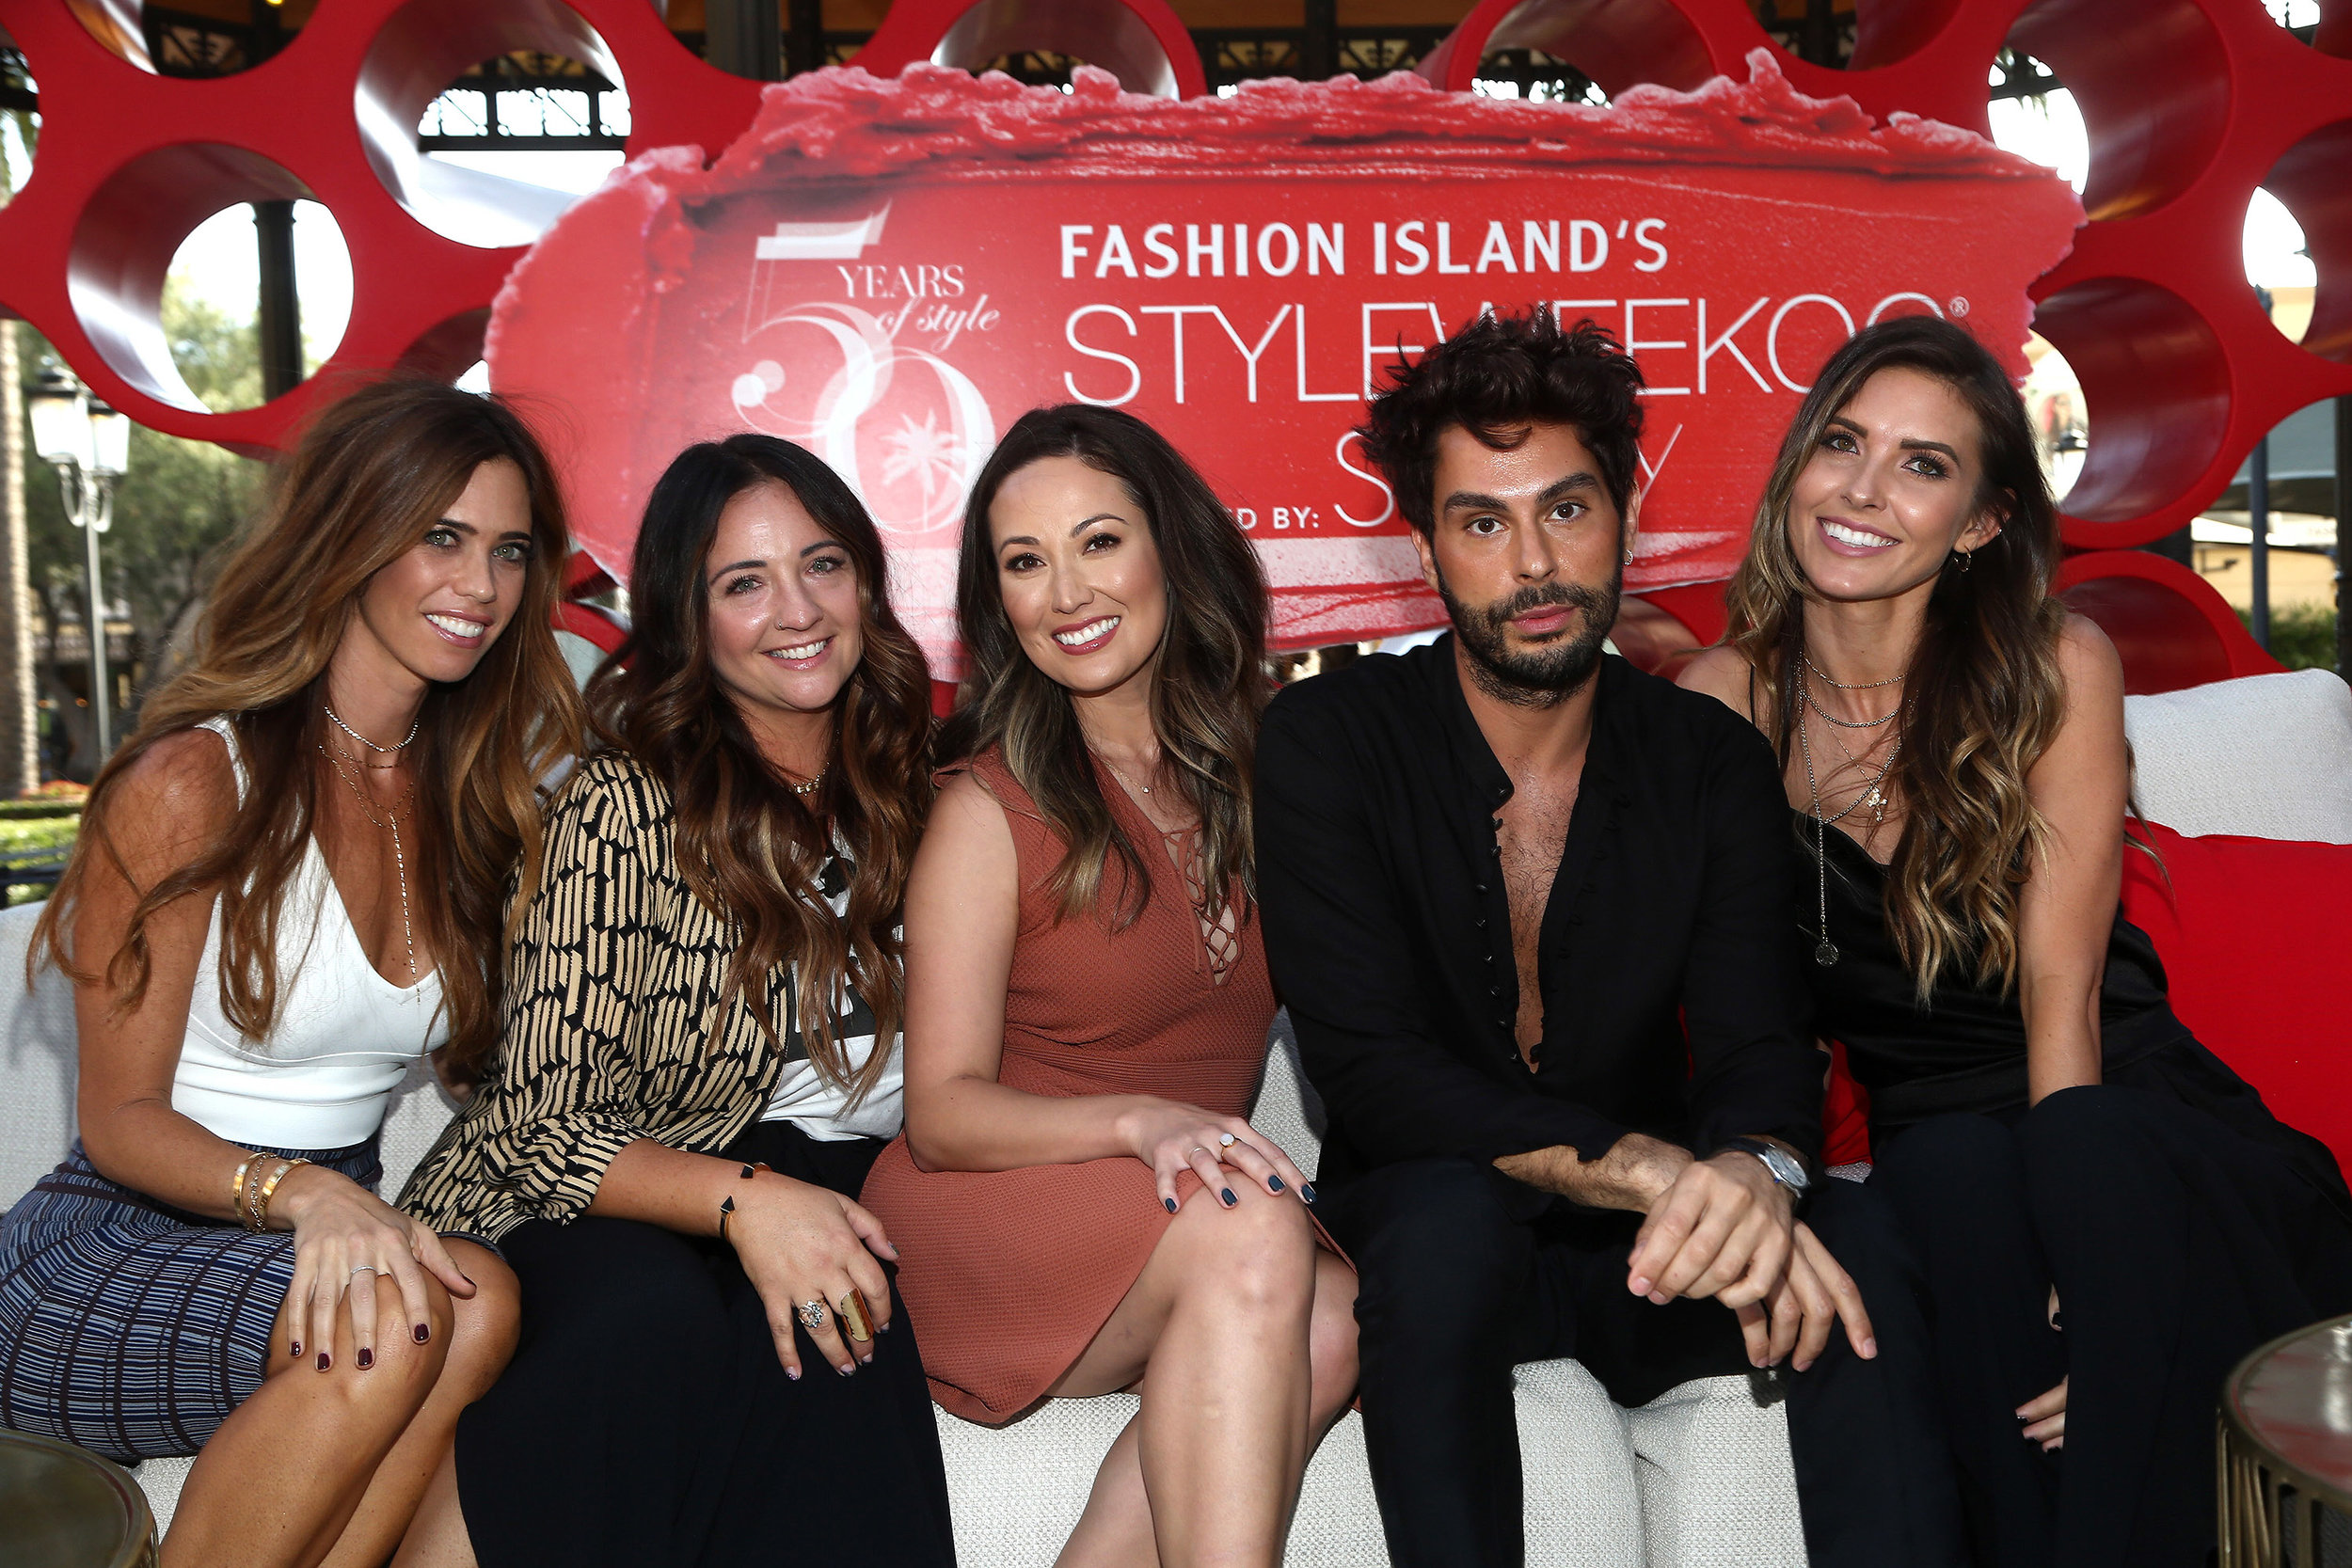 FROM LEFT:  Real Housewives of Orange County  star and lifestyle blogger Lydia McLaughlin, 1011 Makeup founder Erica Beukelman, beauty expert + Mixed Makeup co-founder Susan Yara, The Glam App co-founder Joey Maalouf, and Prey Swim founder and TV personality Audrina Patridge